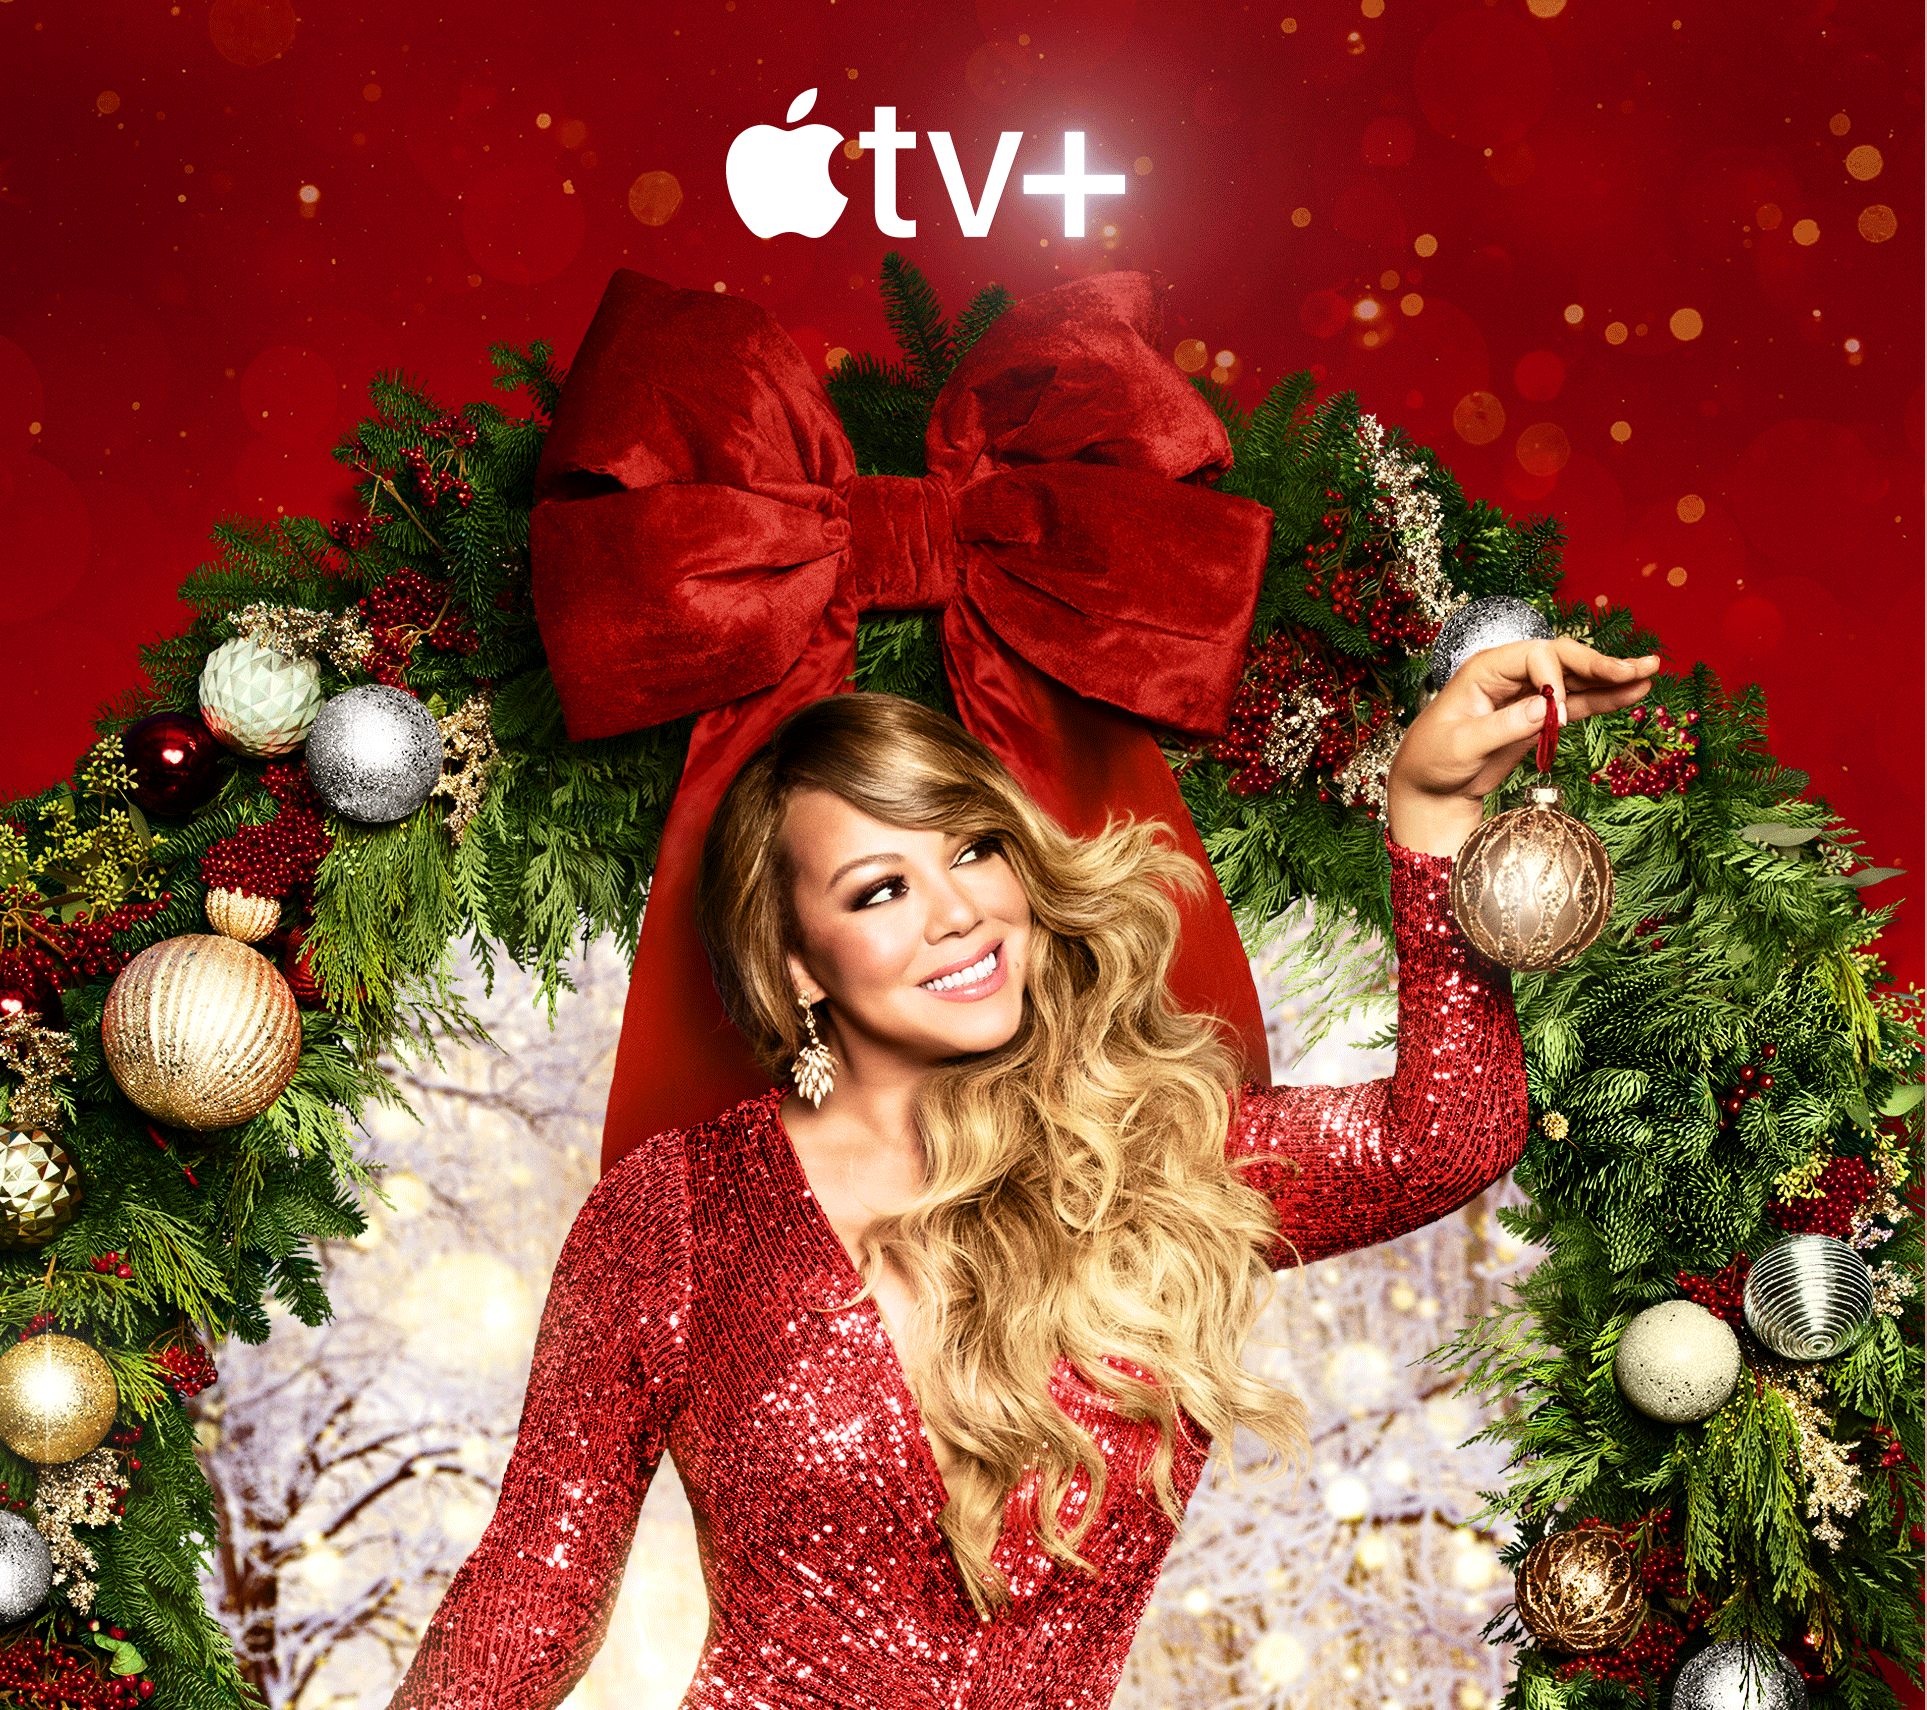 Mariah Carey Has 'Magical Christmas Special' First Look For Planned Apple TV+ Special